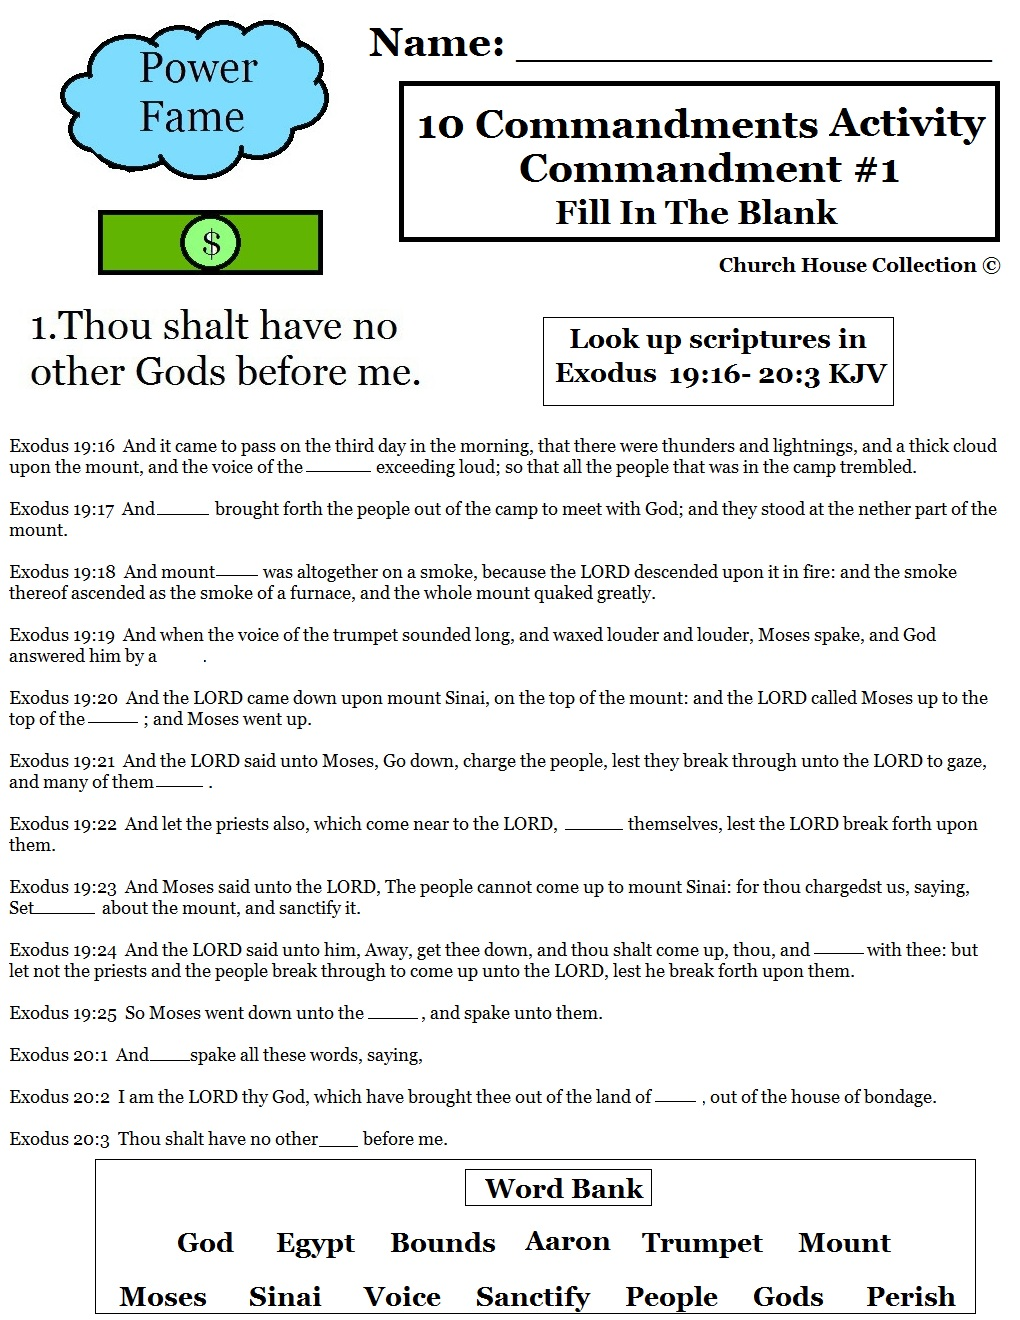 Worksheets 10 Commandments Worksheet church house collection blog 10 commandments thou shalt have no free printable activity sheet fill in the blank page for kids